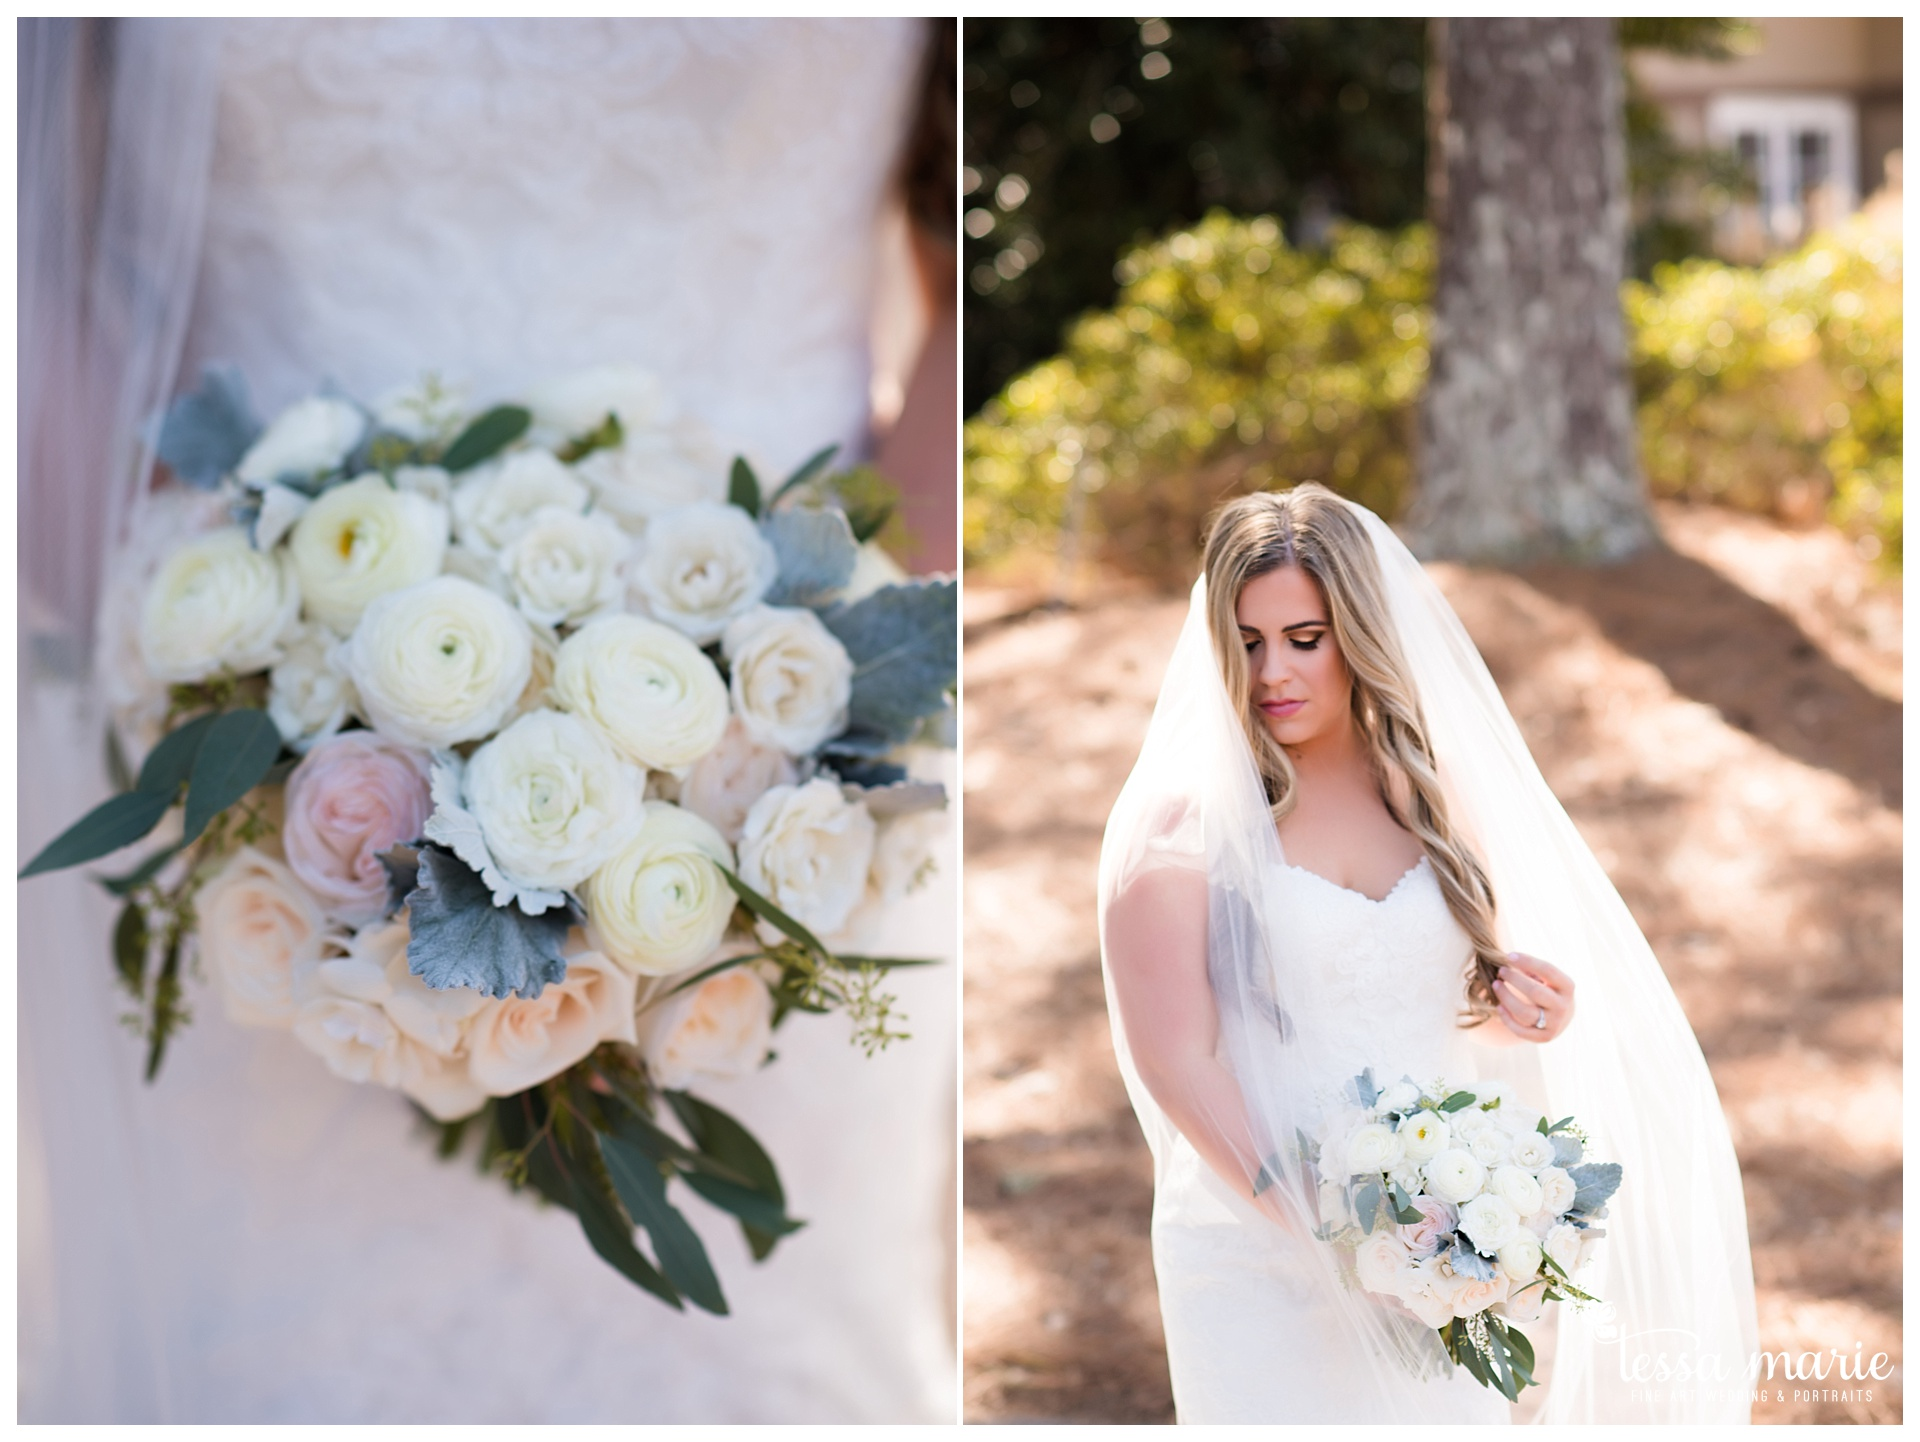 tessa_marie_weddings_legacy_story_focused_wedding_pictures_atlanta_wedding_photographer_0078